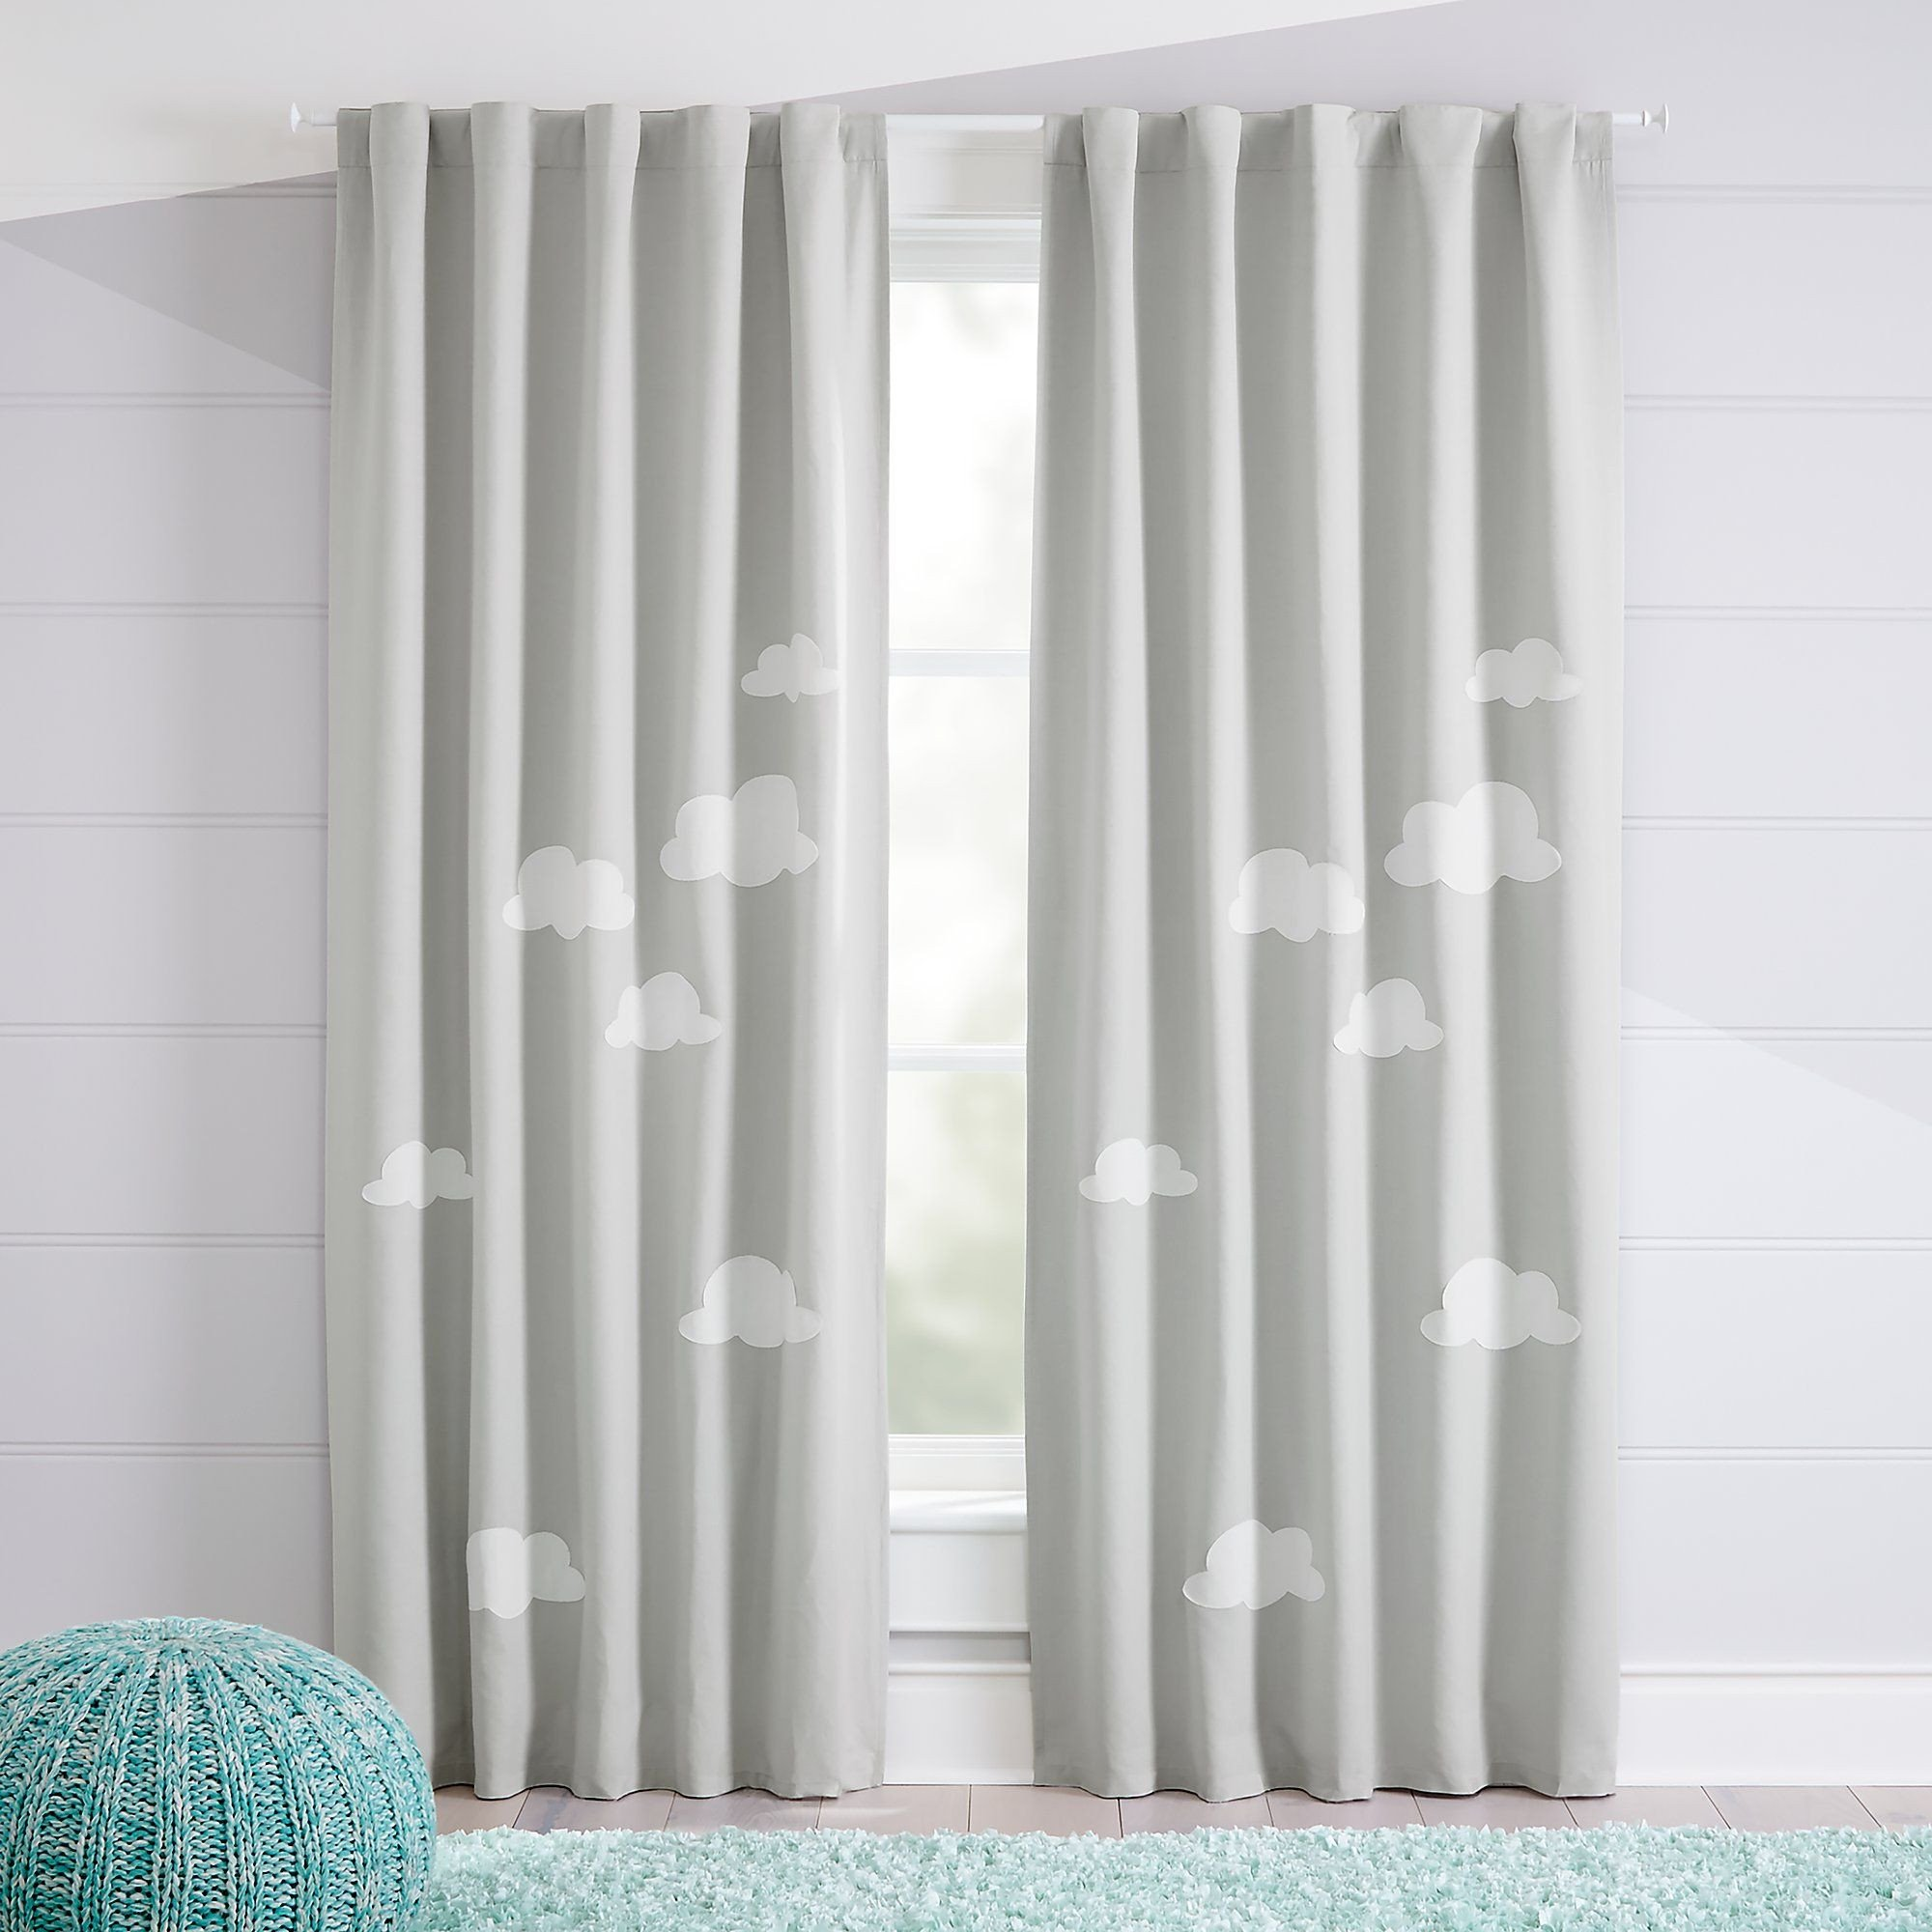 "Black Curtains for Bedroom Awesome Cloud 63"" Blackout Curtain"